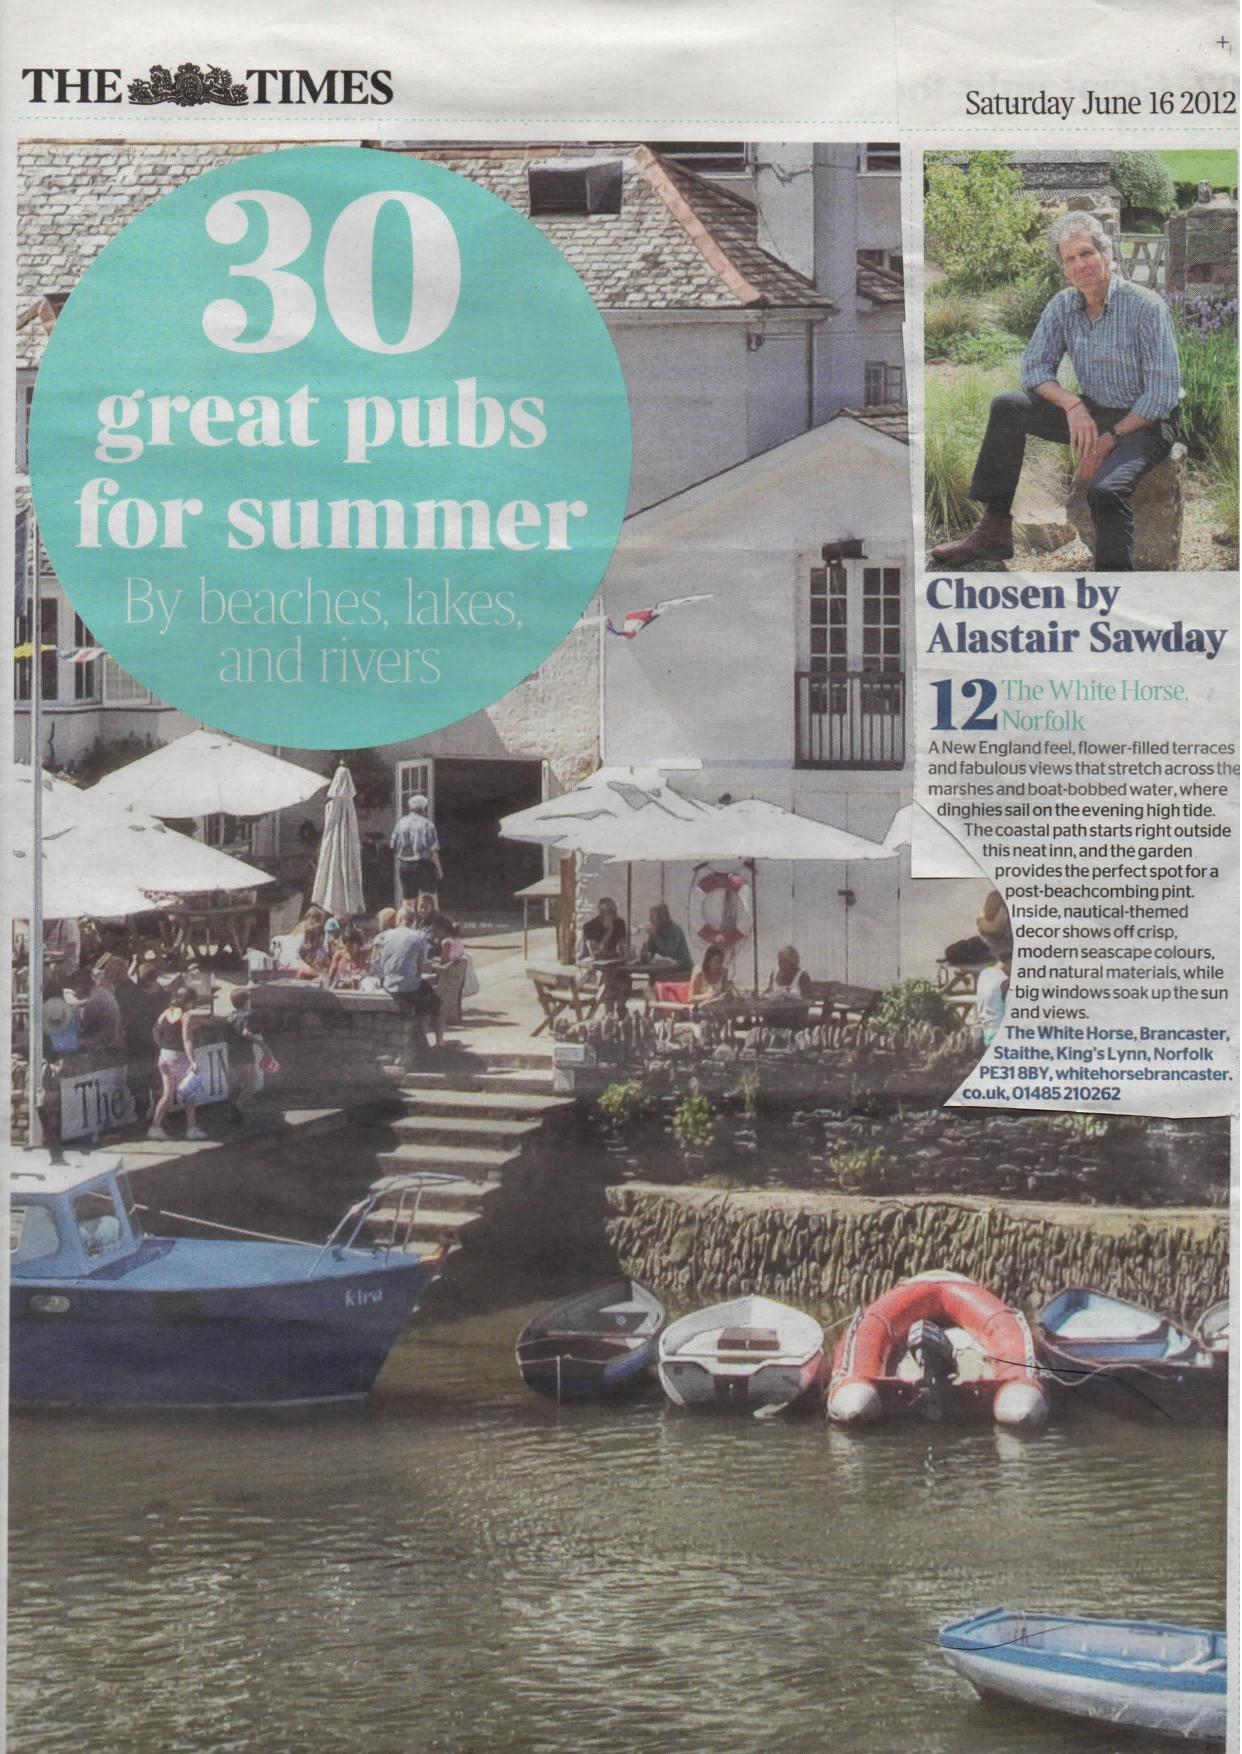 30 great pubs for summer by beaches, lakes and rivers - The Times